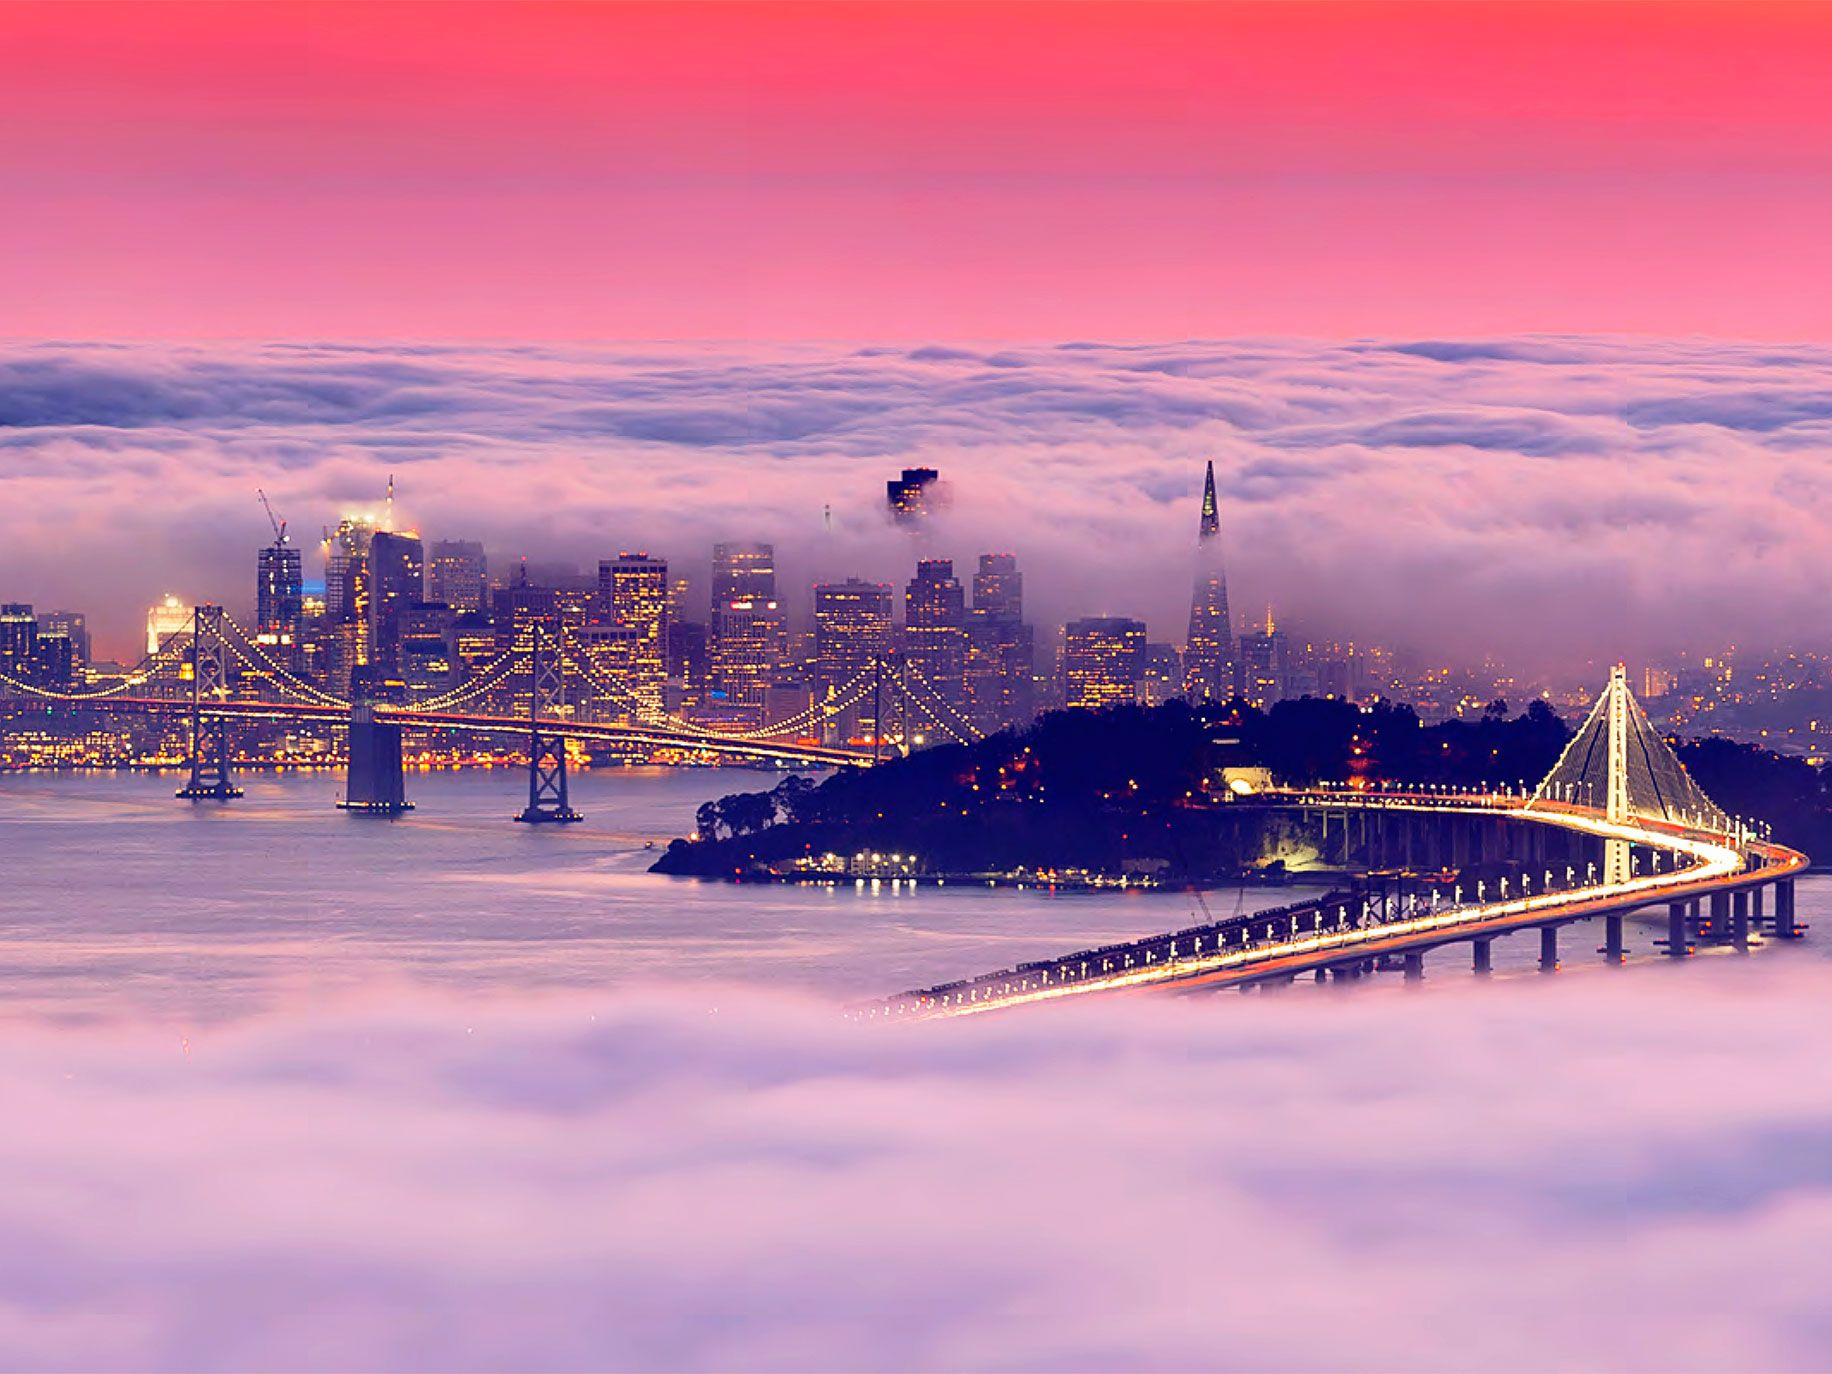 """A sunset """"fog sandwich"""" engulfs the City by the Bay at dusk in this photograph from San Francisco on Instagram."""